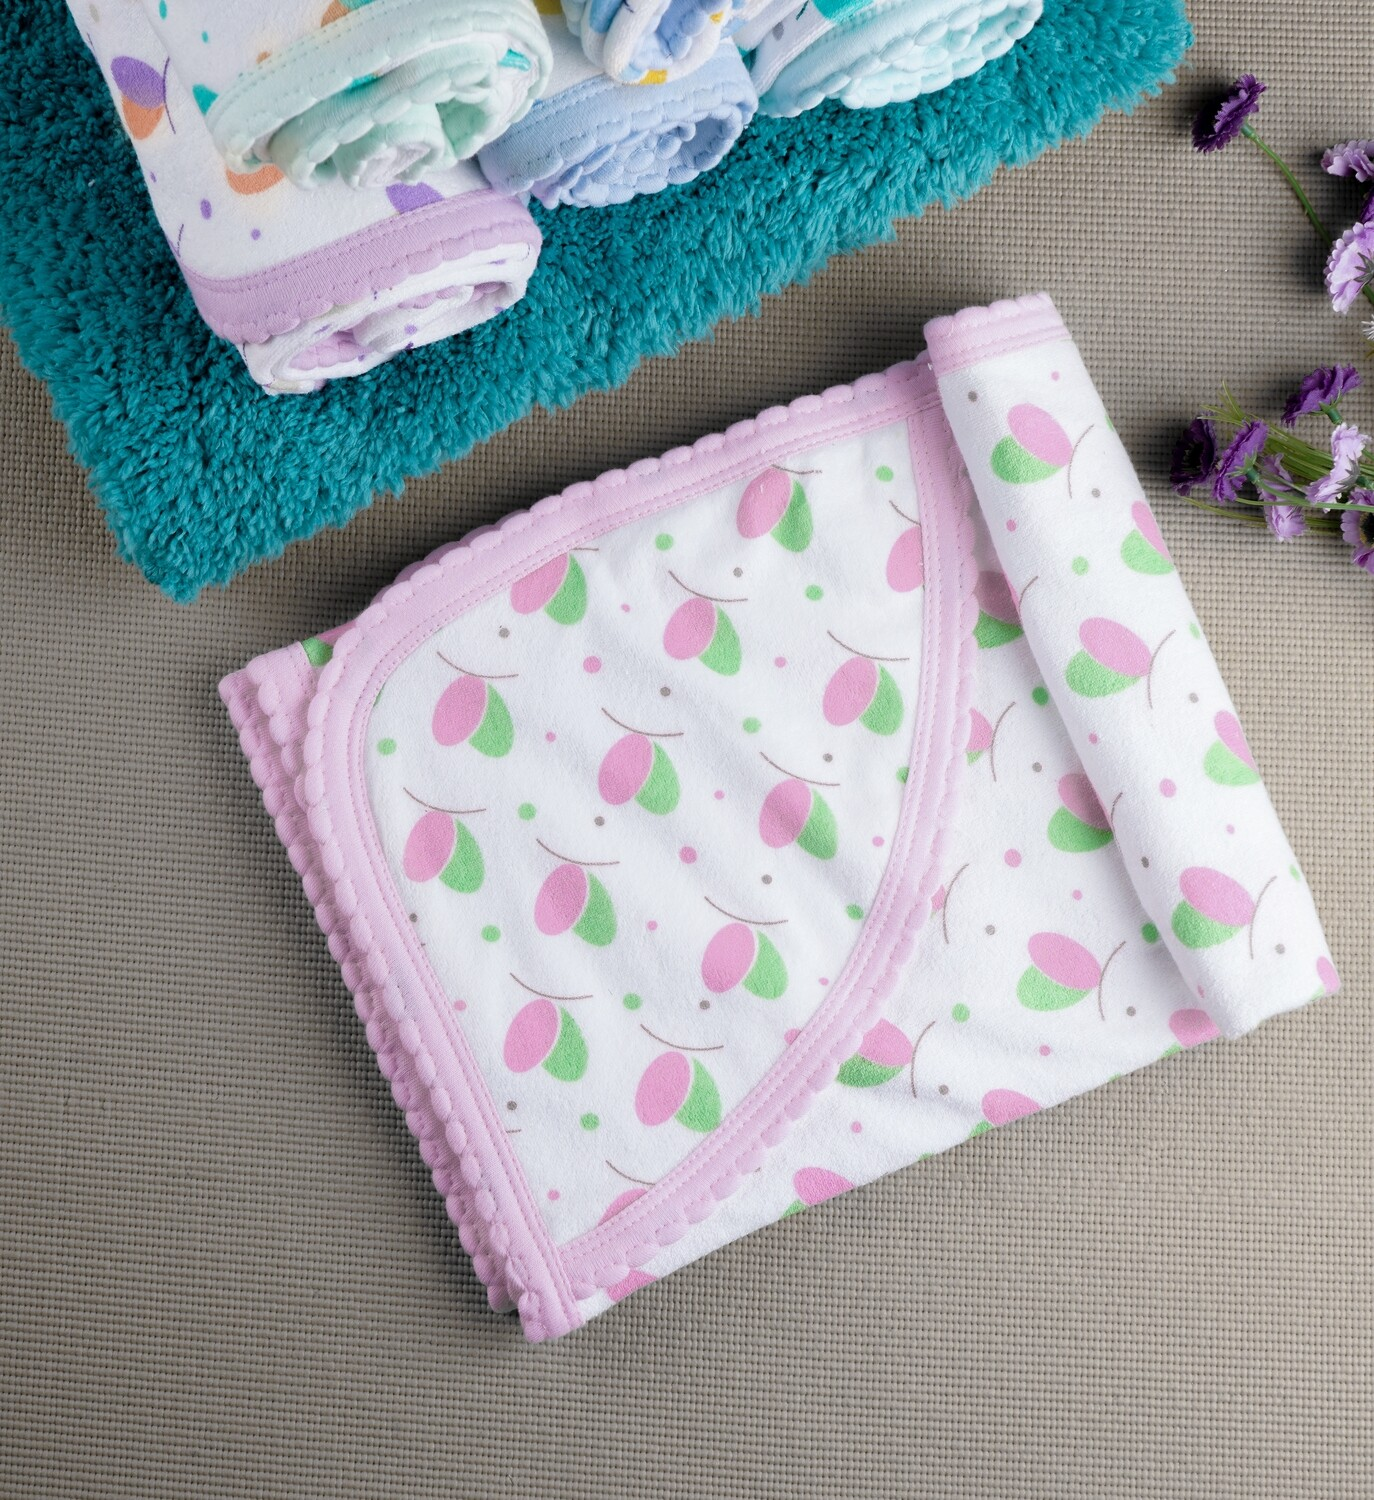 Lucia Rose 100% Combed Cotton Hooded Towel with Print for Babies (71x71 CM)